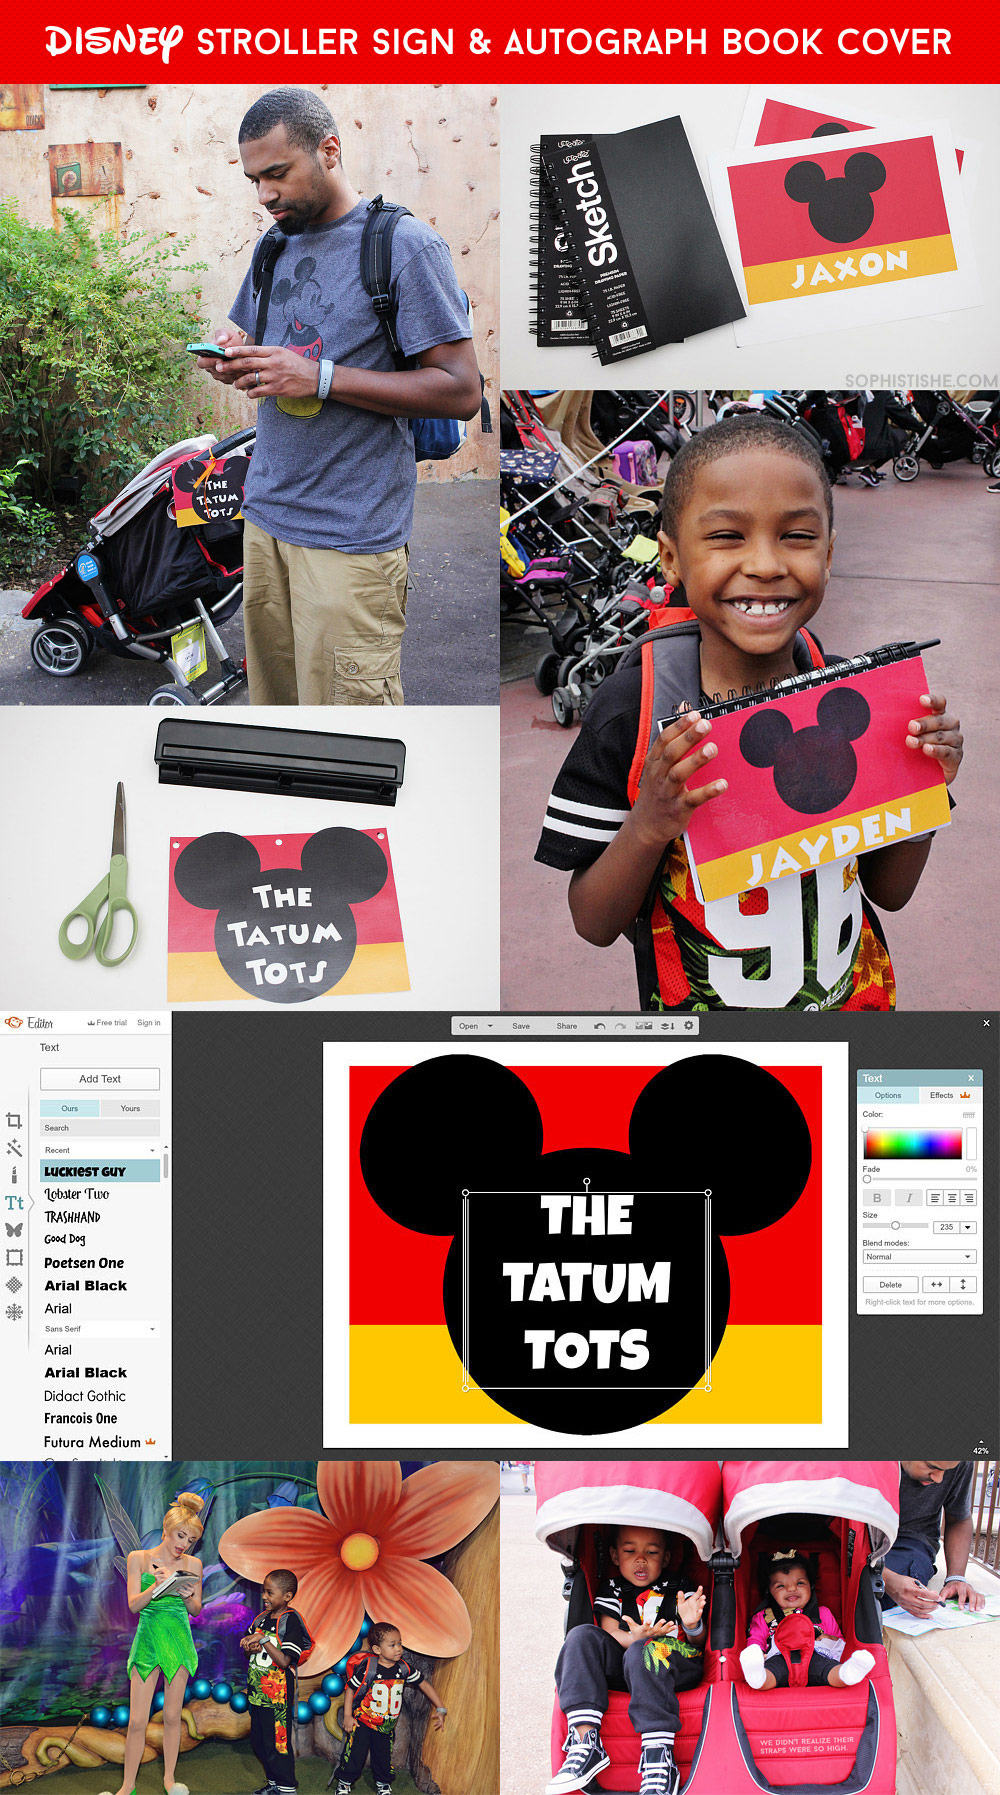 DIY Disney Autograph Book & Stroller Sign - stand out on your Disney vacation!